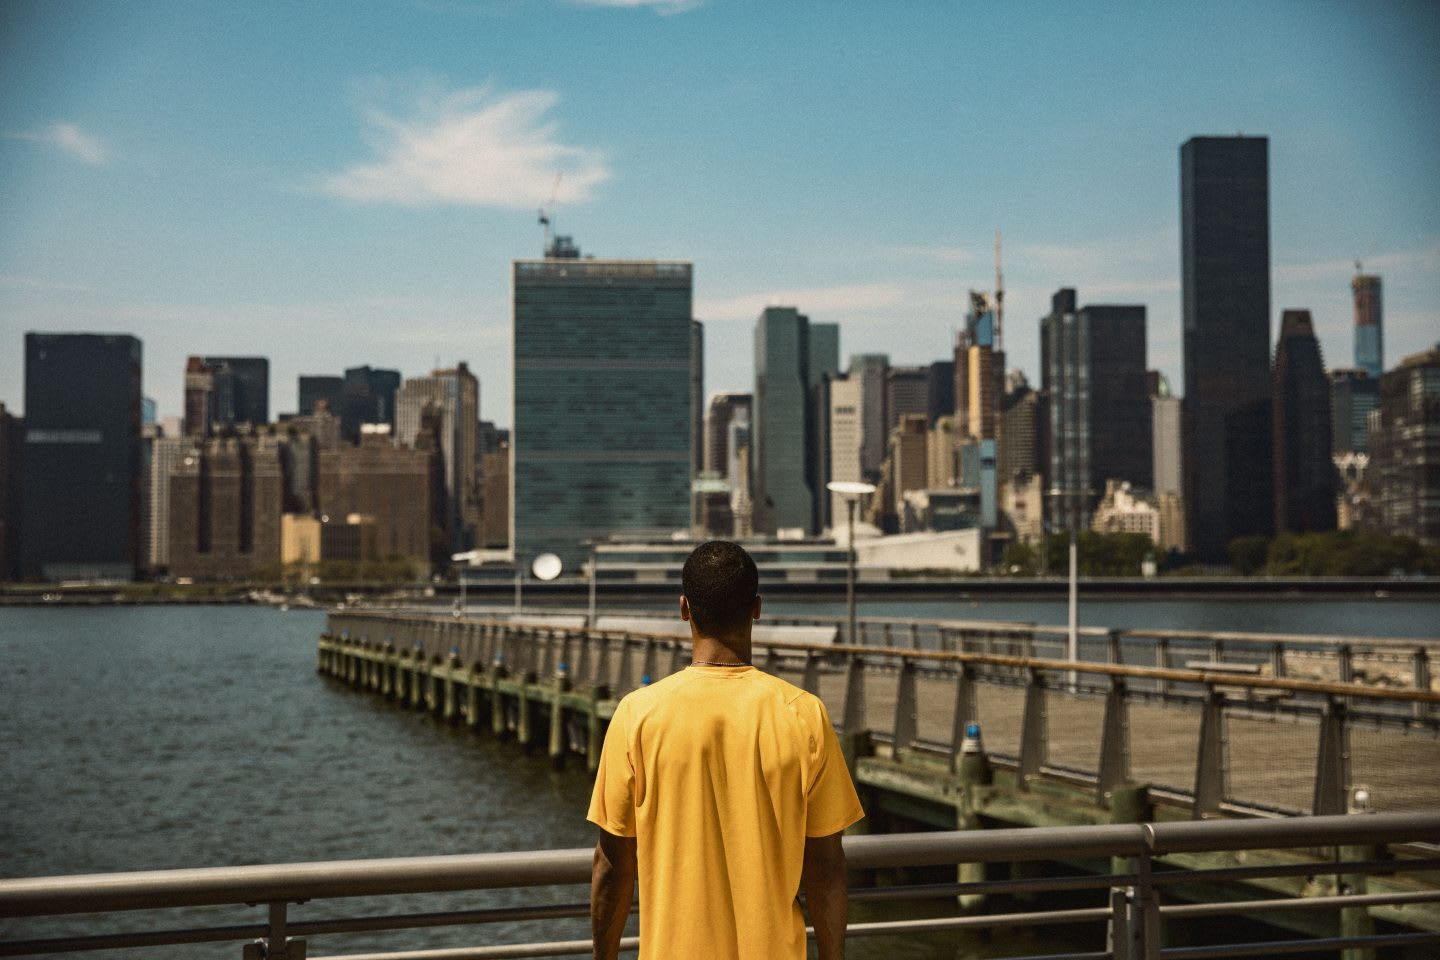 Man wearing a yellow t-shirt looking out at a city skyline, sport, adidas, exercise, fitness, GamePlan A